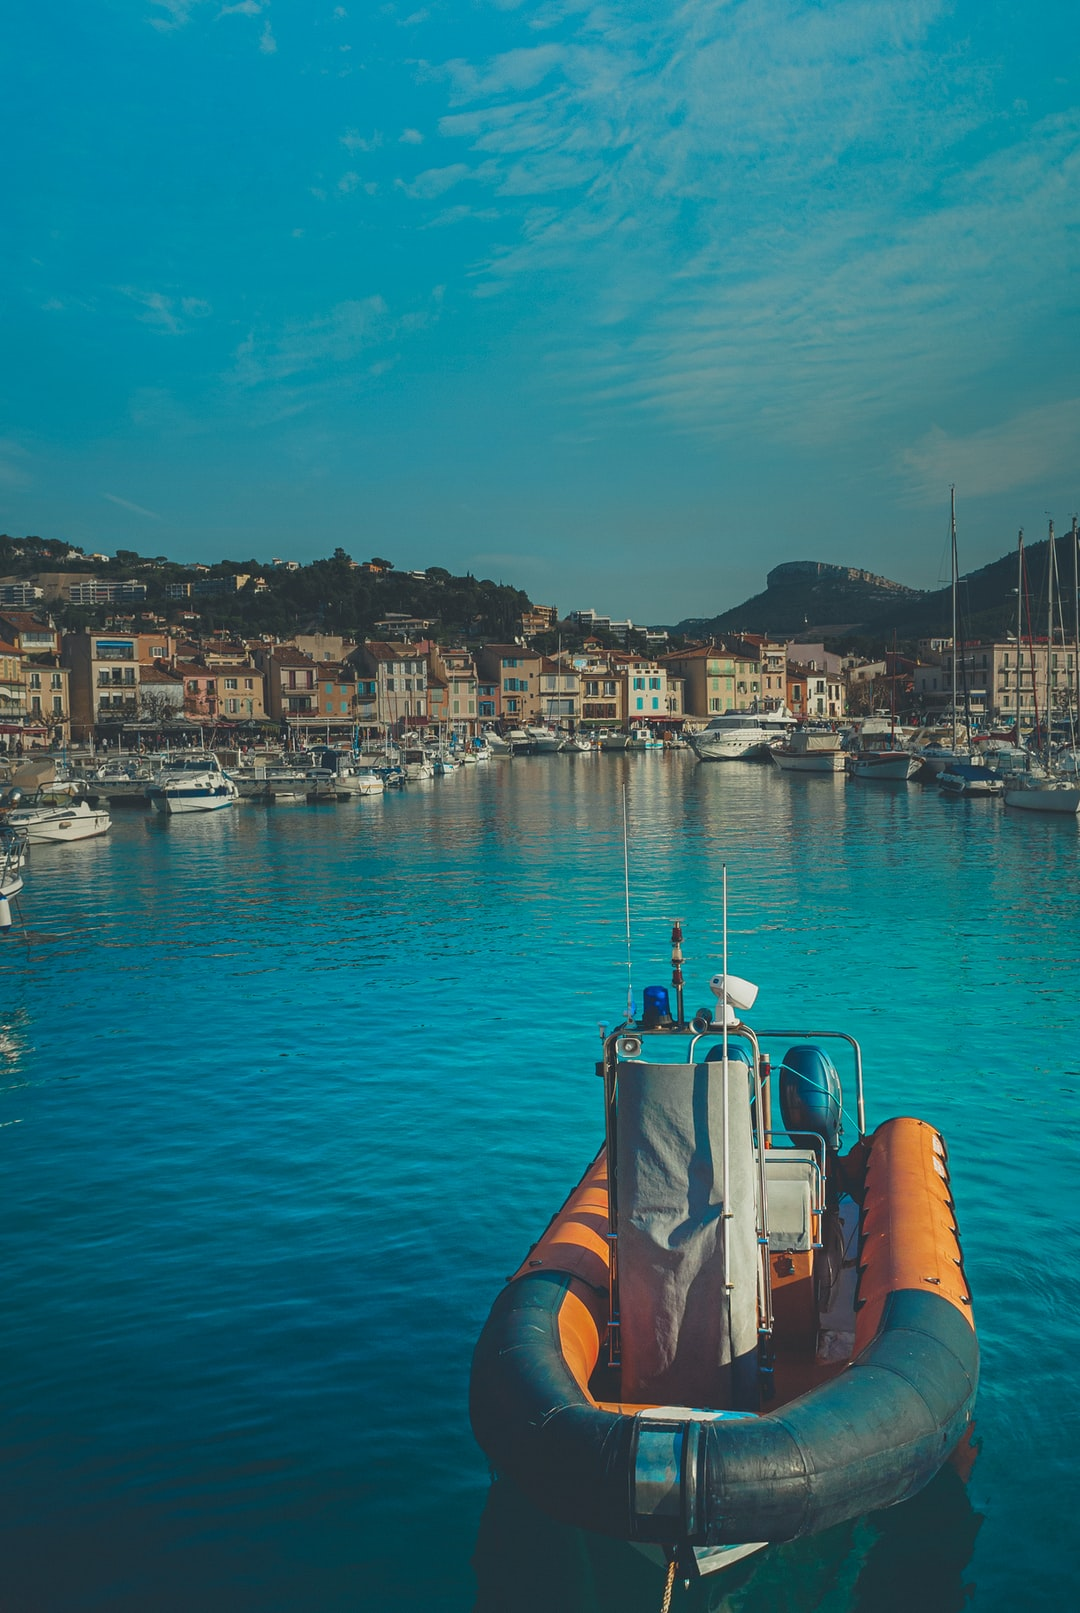 The port in the city of Cassis, France. It's a small and pleasant town — quiet, atmospheric and picturesque.